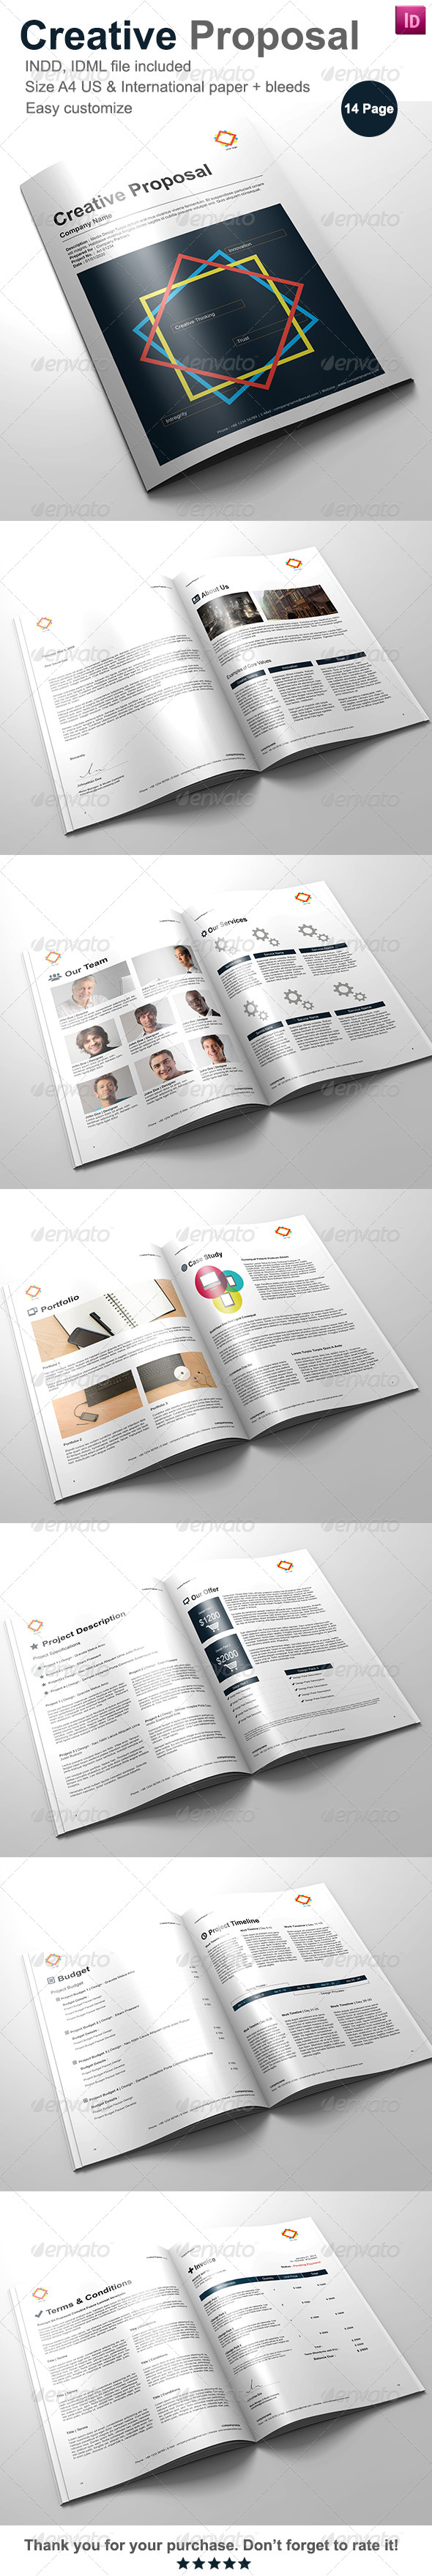 Gstudio Creative Proposal Template - Proposals & Invoices Stationery